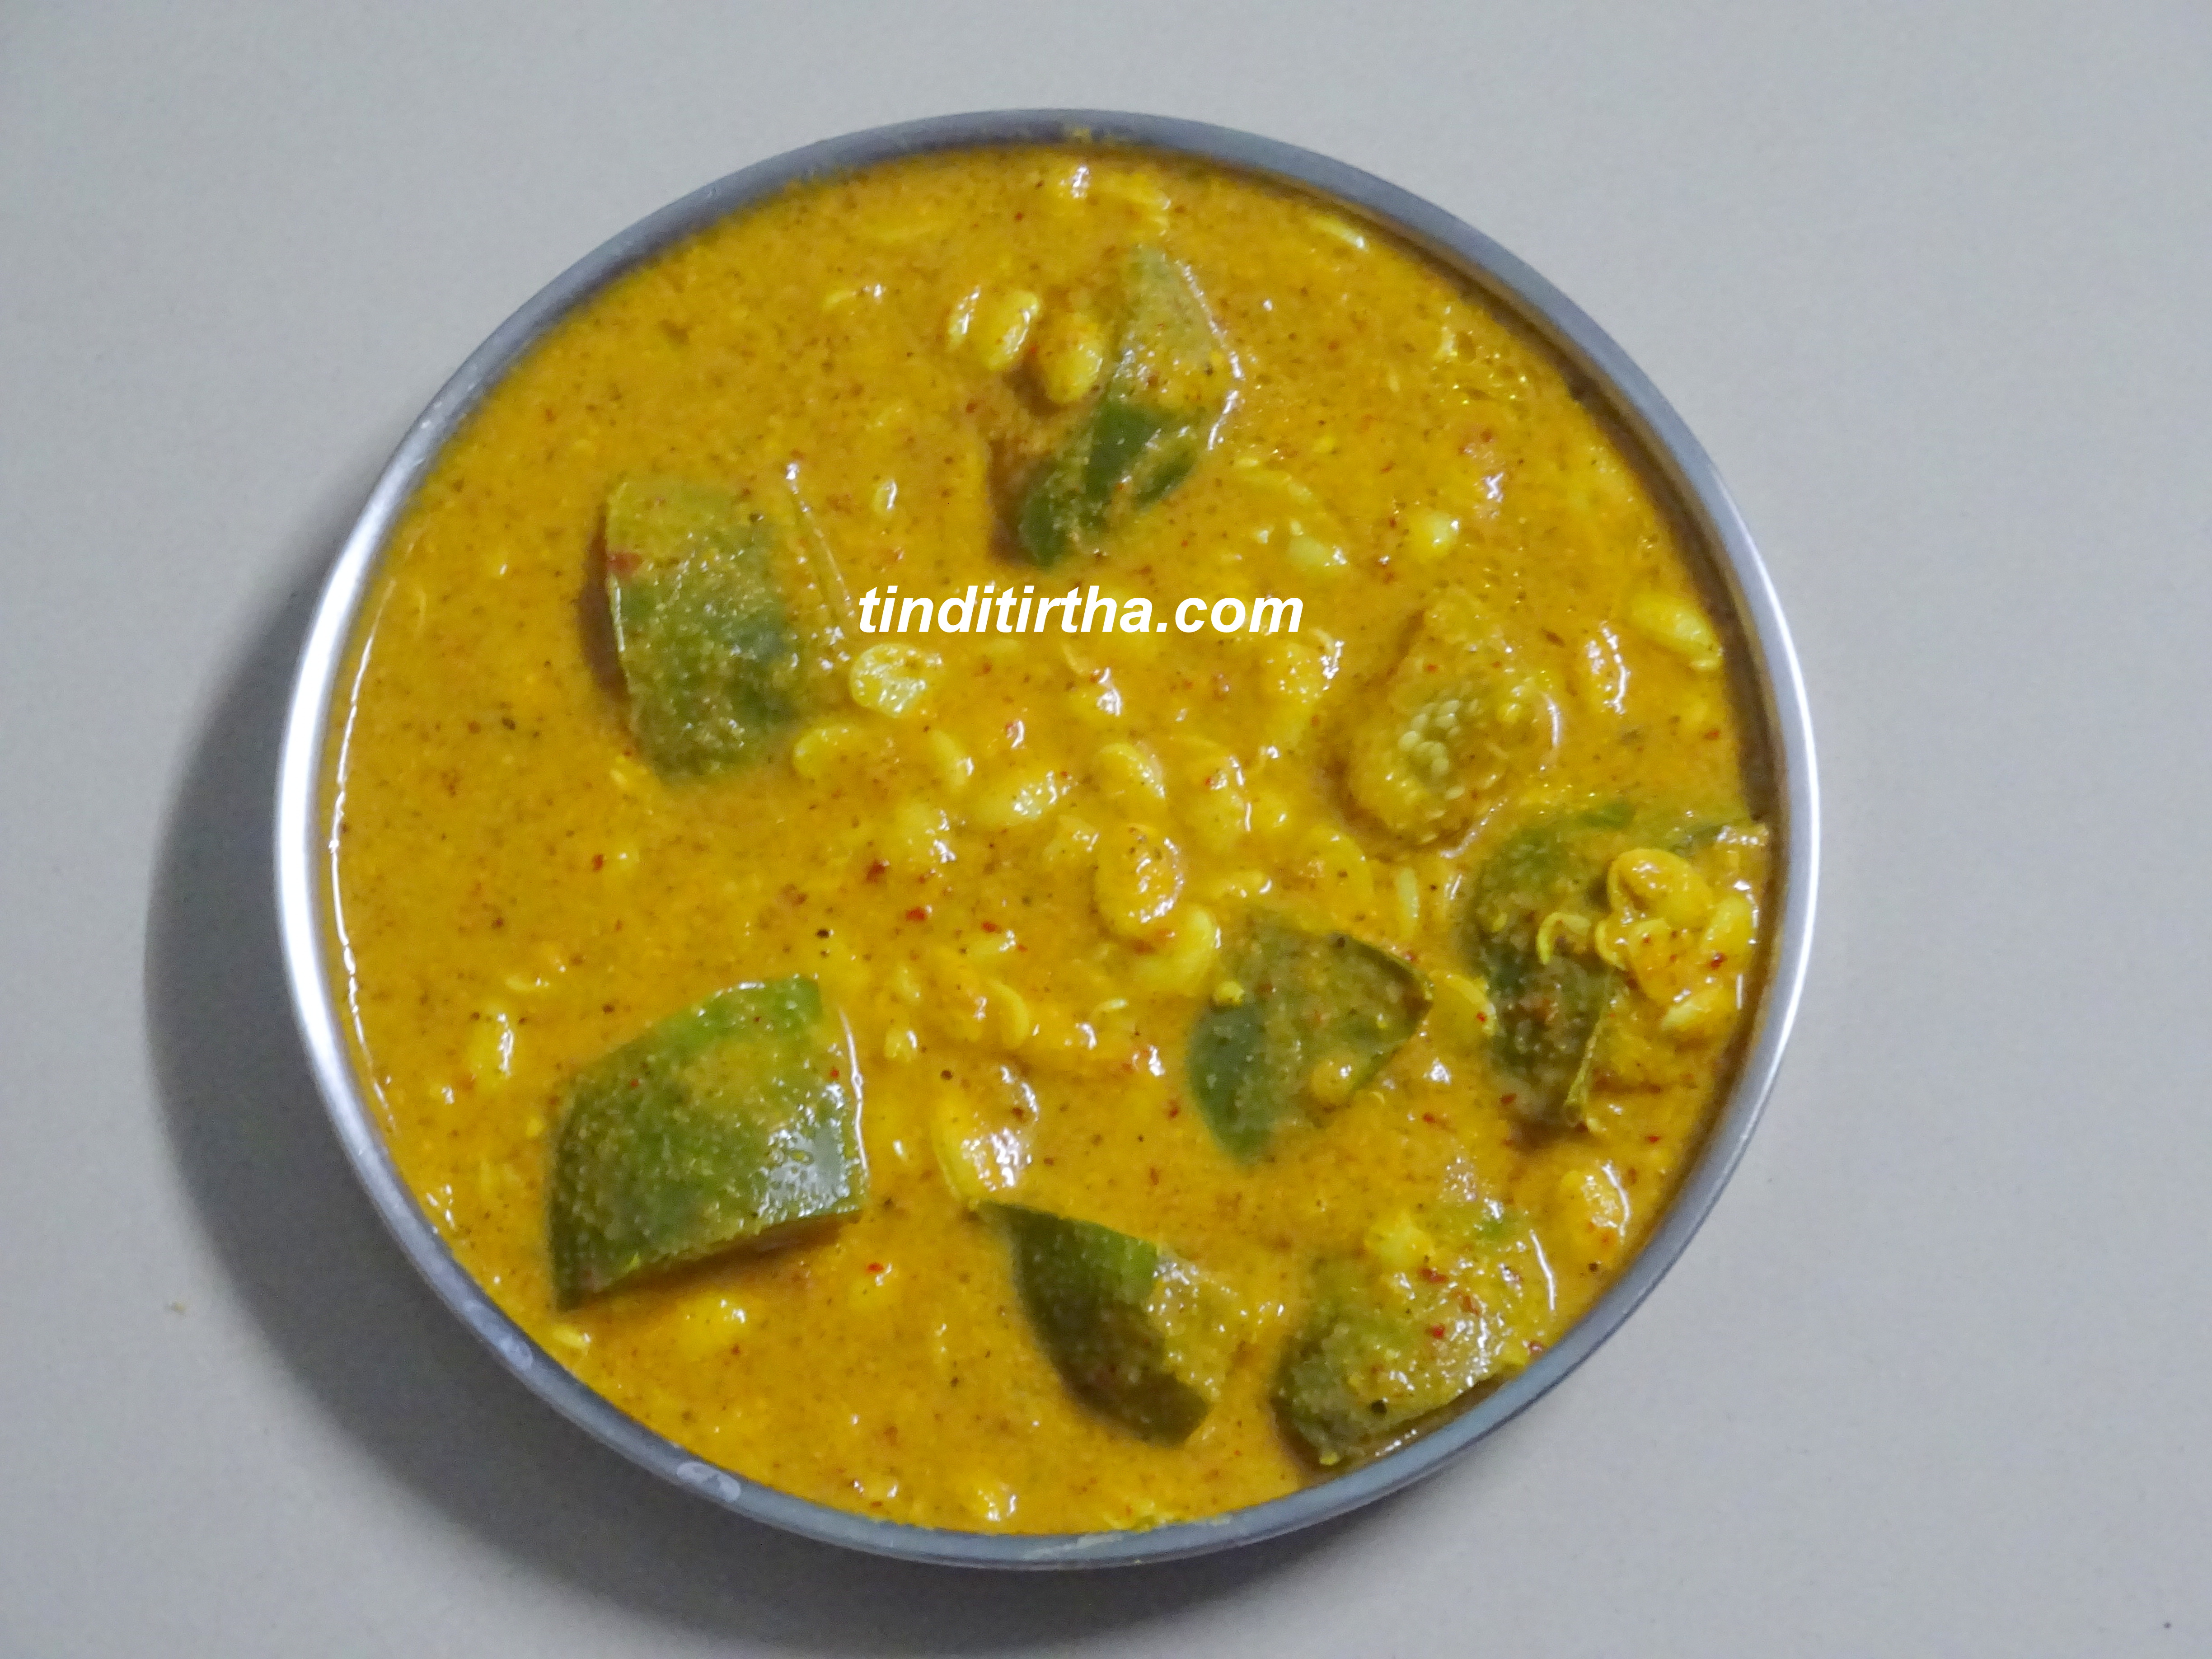 PRESSED FIELD BEANS/HYACINTH BEANS CURRY / HITAKAVARE BELE + BRINJAL HULI